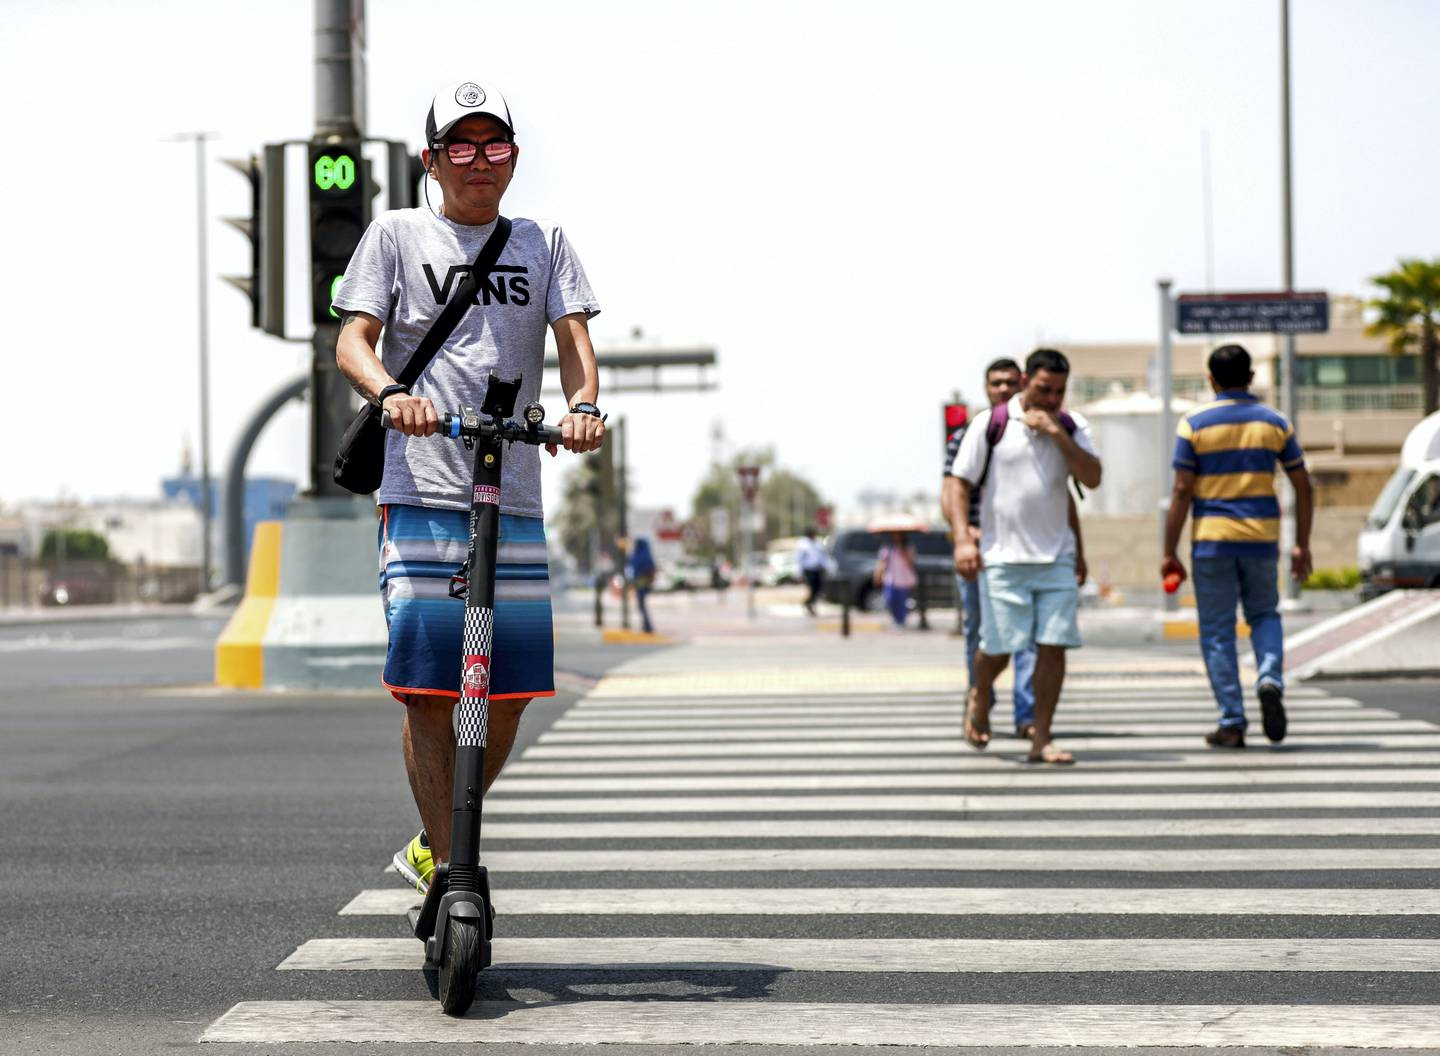 Abu Dhabi, United Arab Emirates, August 13, 2019.  People using E-scooters at the Al Wahda mall area, downtown Abu Dhabi. --  Perry Malapitan, takes an E-scooter everyday to work at downtown Abu Dhabi.Victor Besa/The NationalSection:  NAFOR:  Standalone